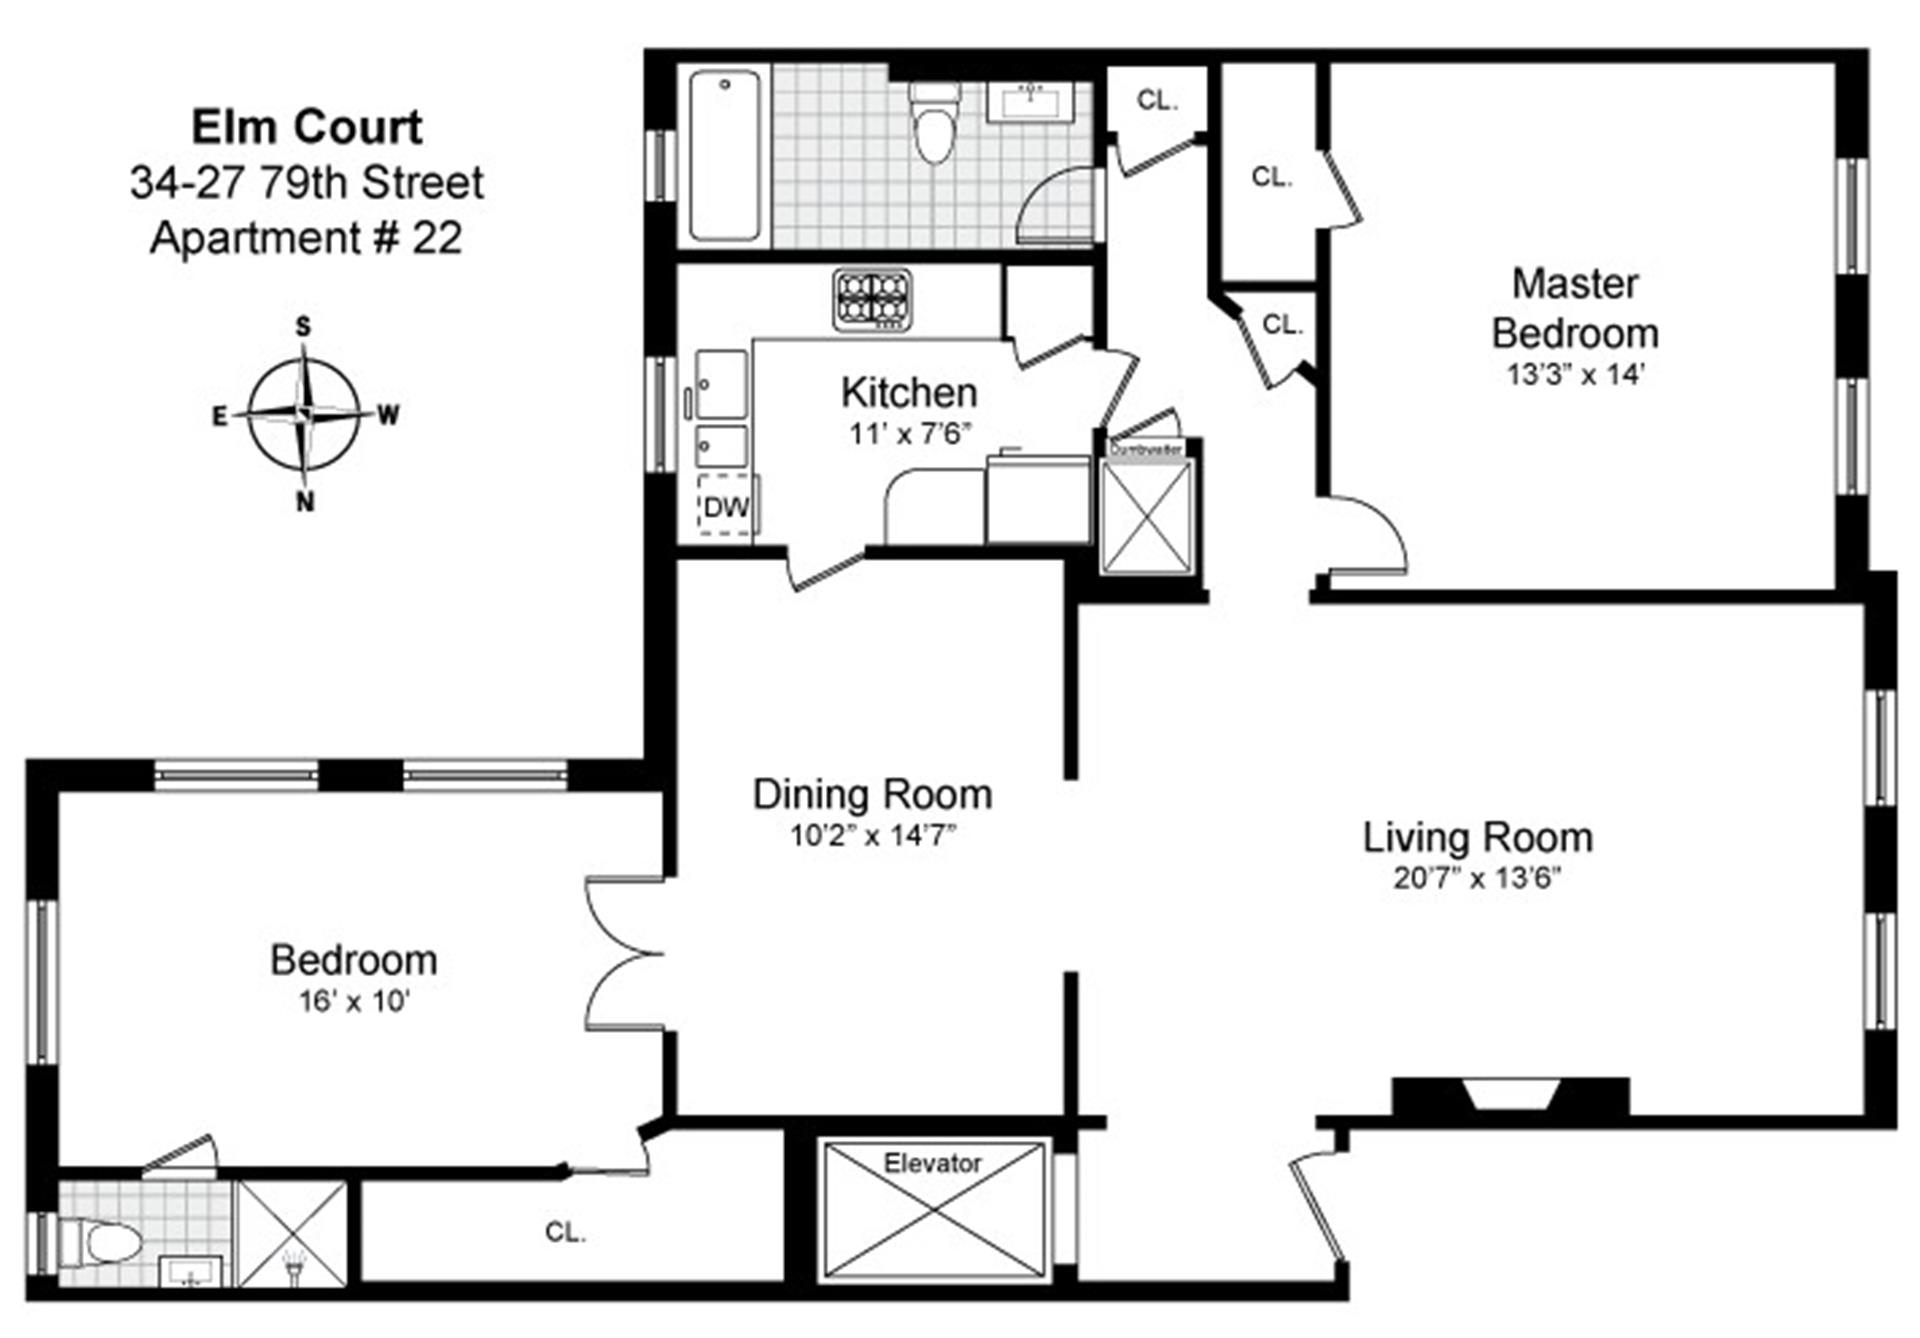 Floor plan of 34-27 79th St, 22 - Jackson Heights, New York